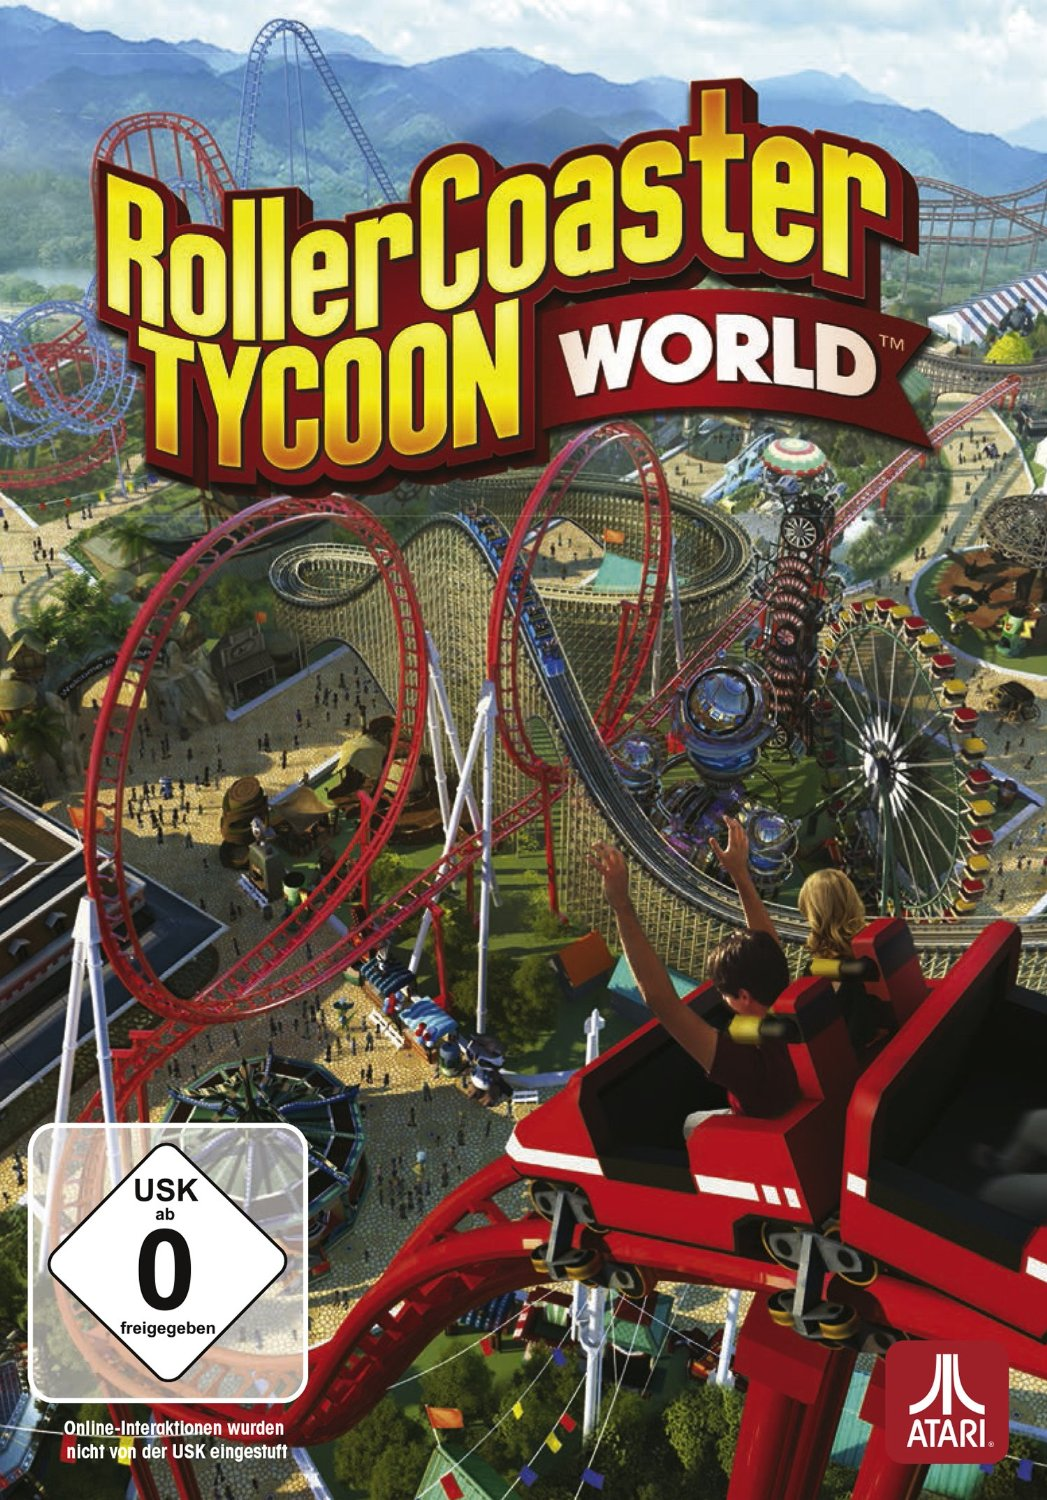 rollercoaster-tycoon-world-usk-packshot-nat-games